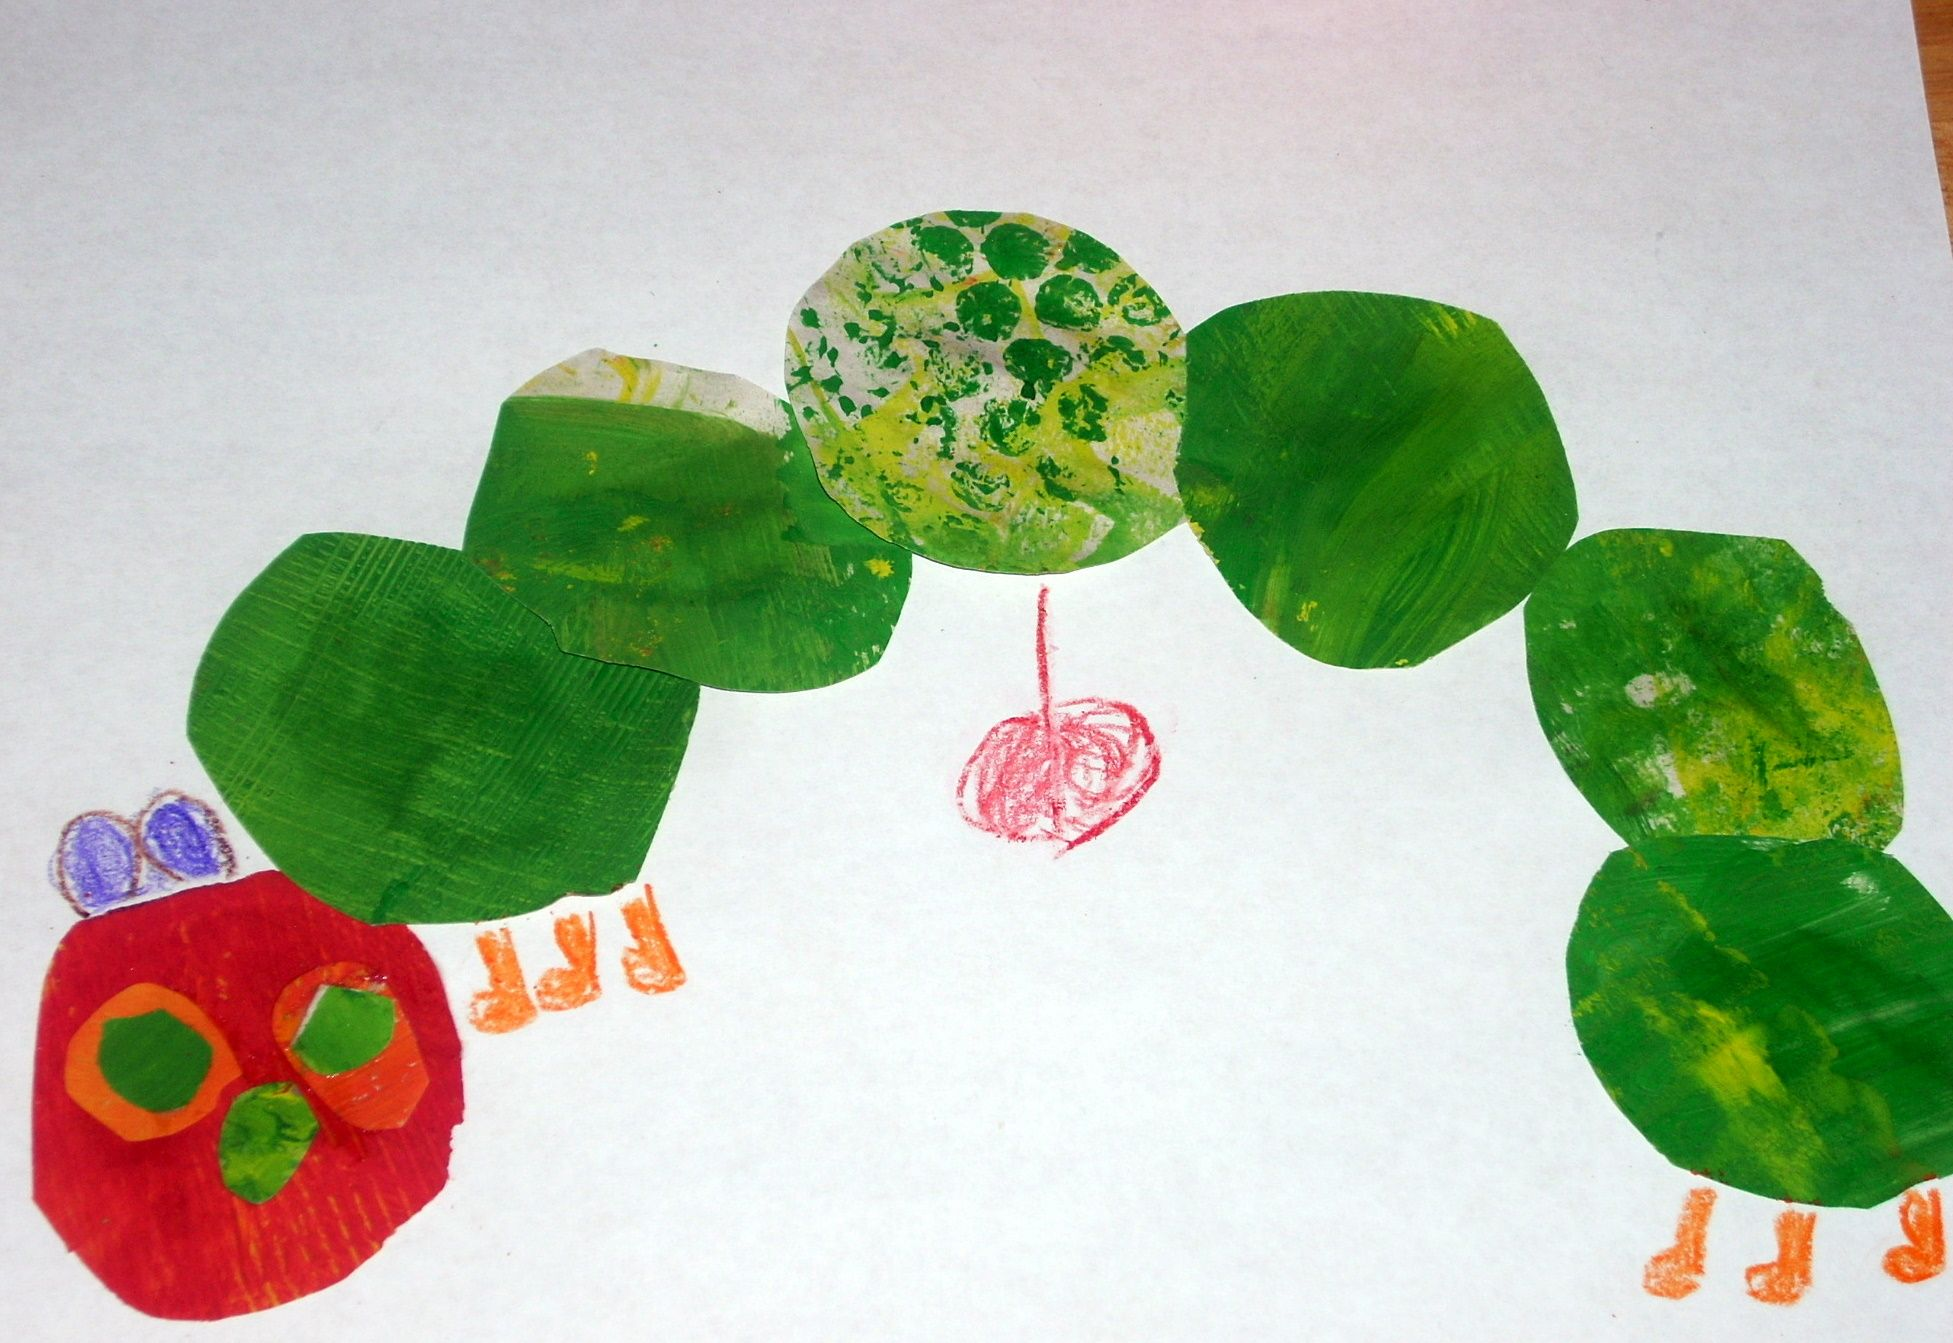 Use Eric Carle's process to create artwork inspired by his books